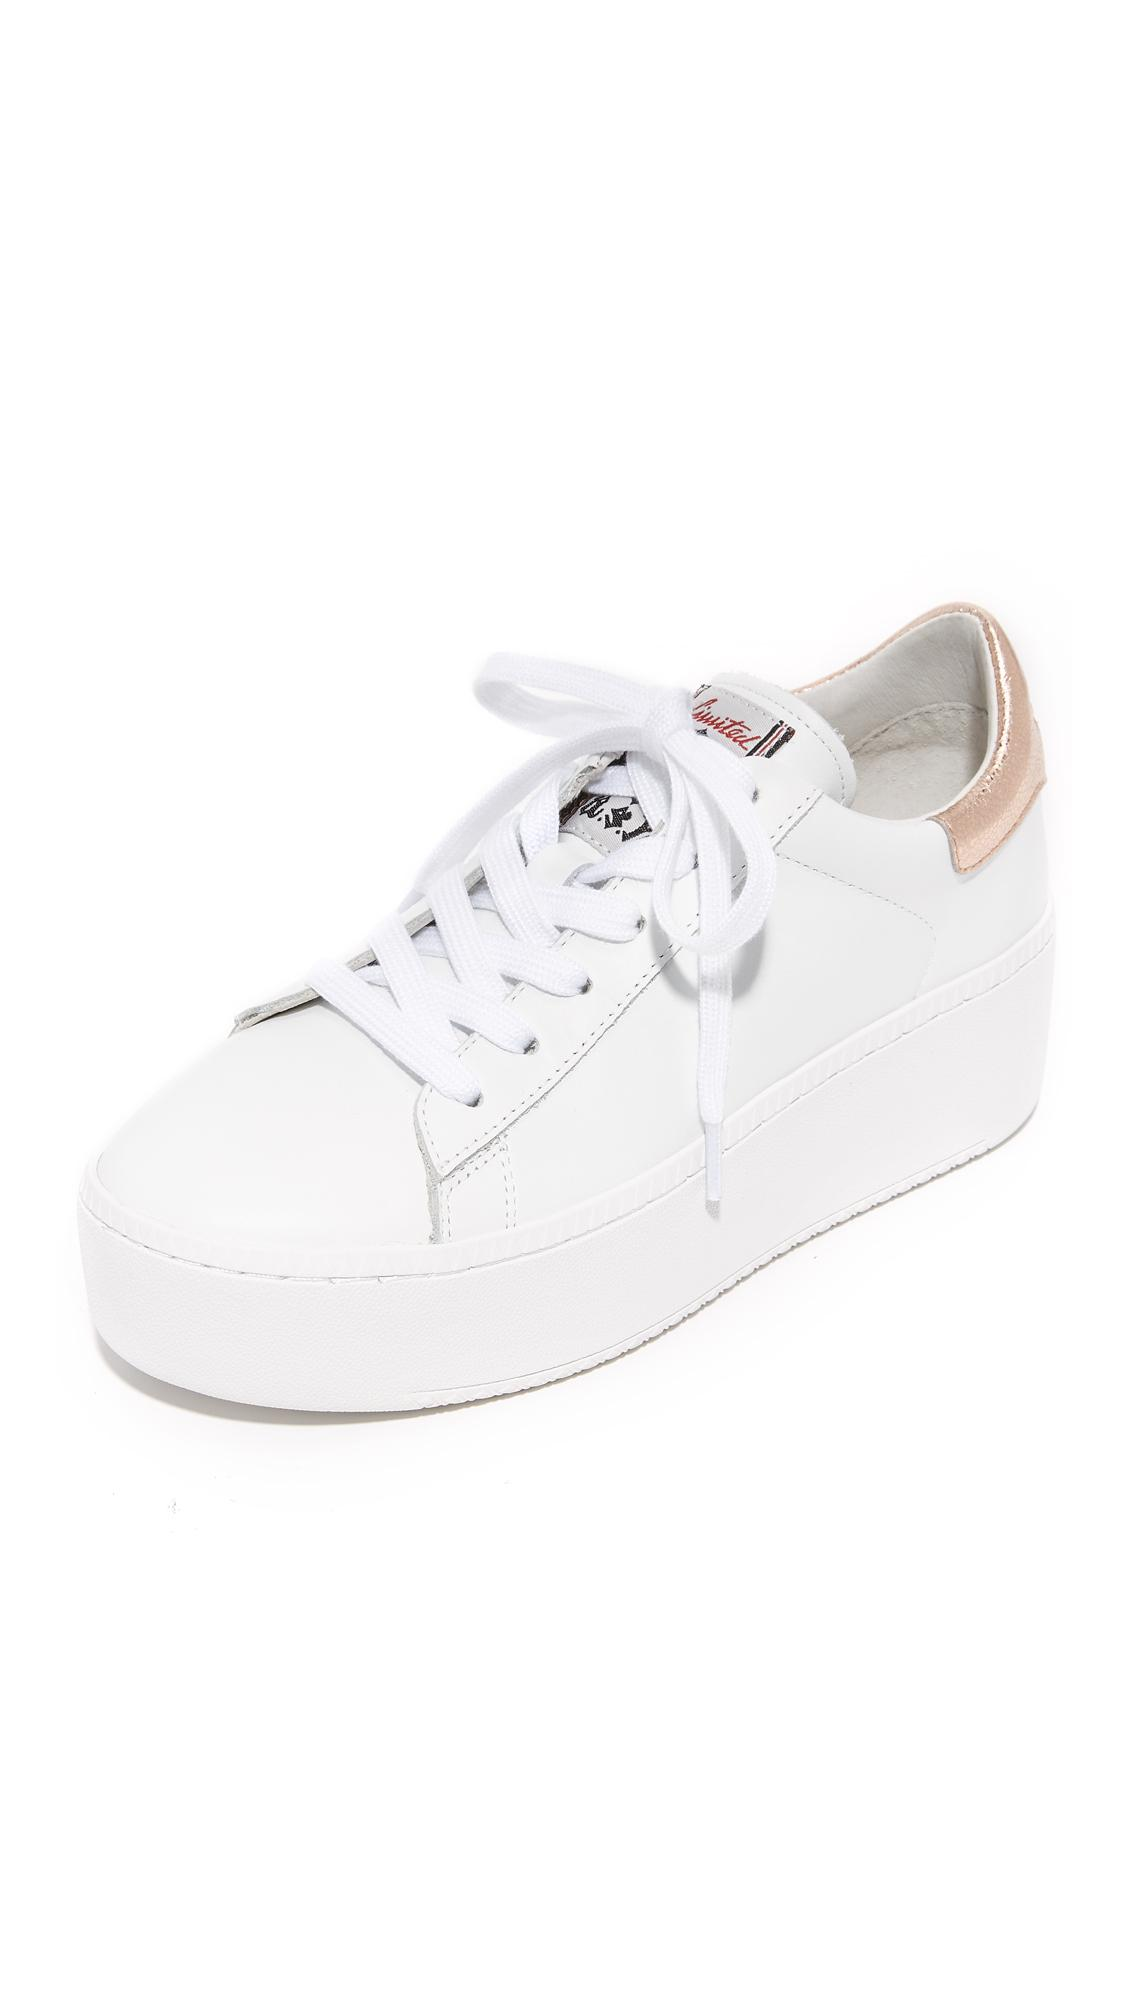 56401f5be940 Ash Cult Platform Sneakers in White - Lyst